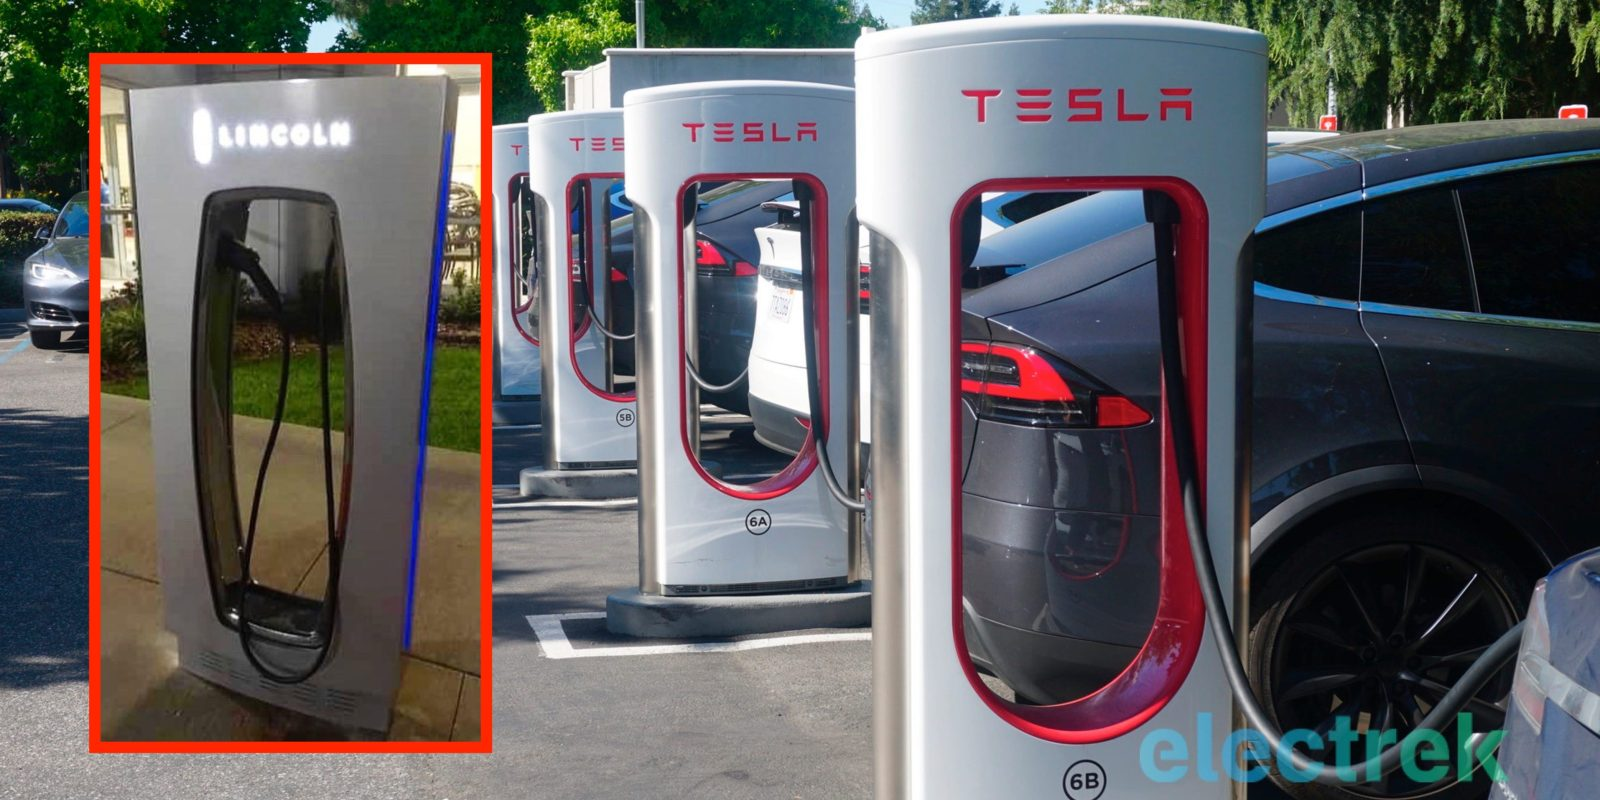 Ford copies Tesla Supercharger design, but it should copy its charging business model